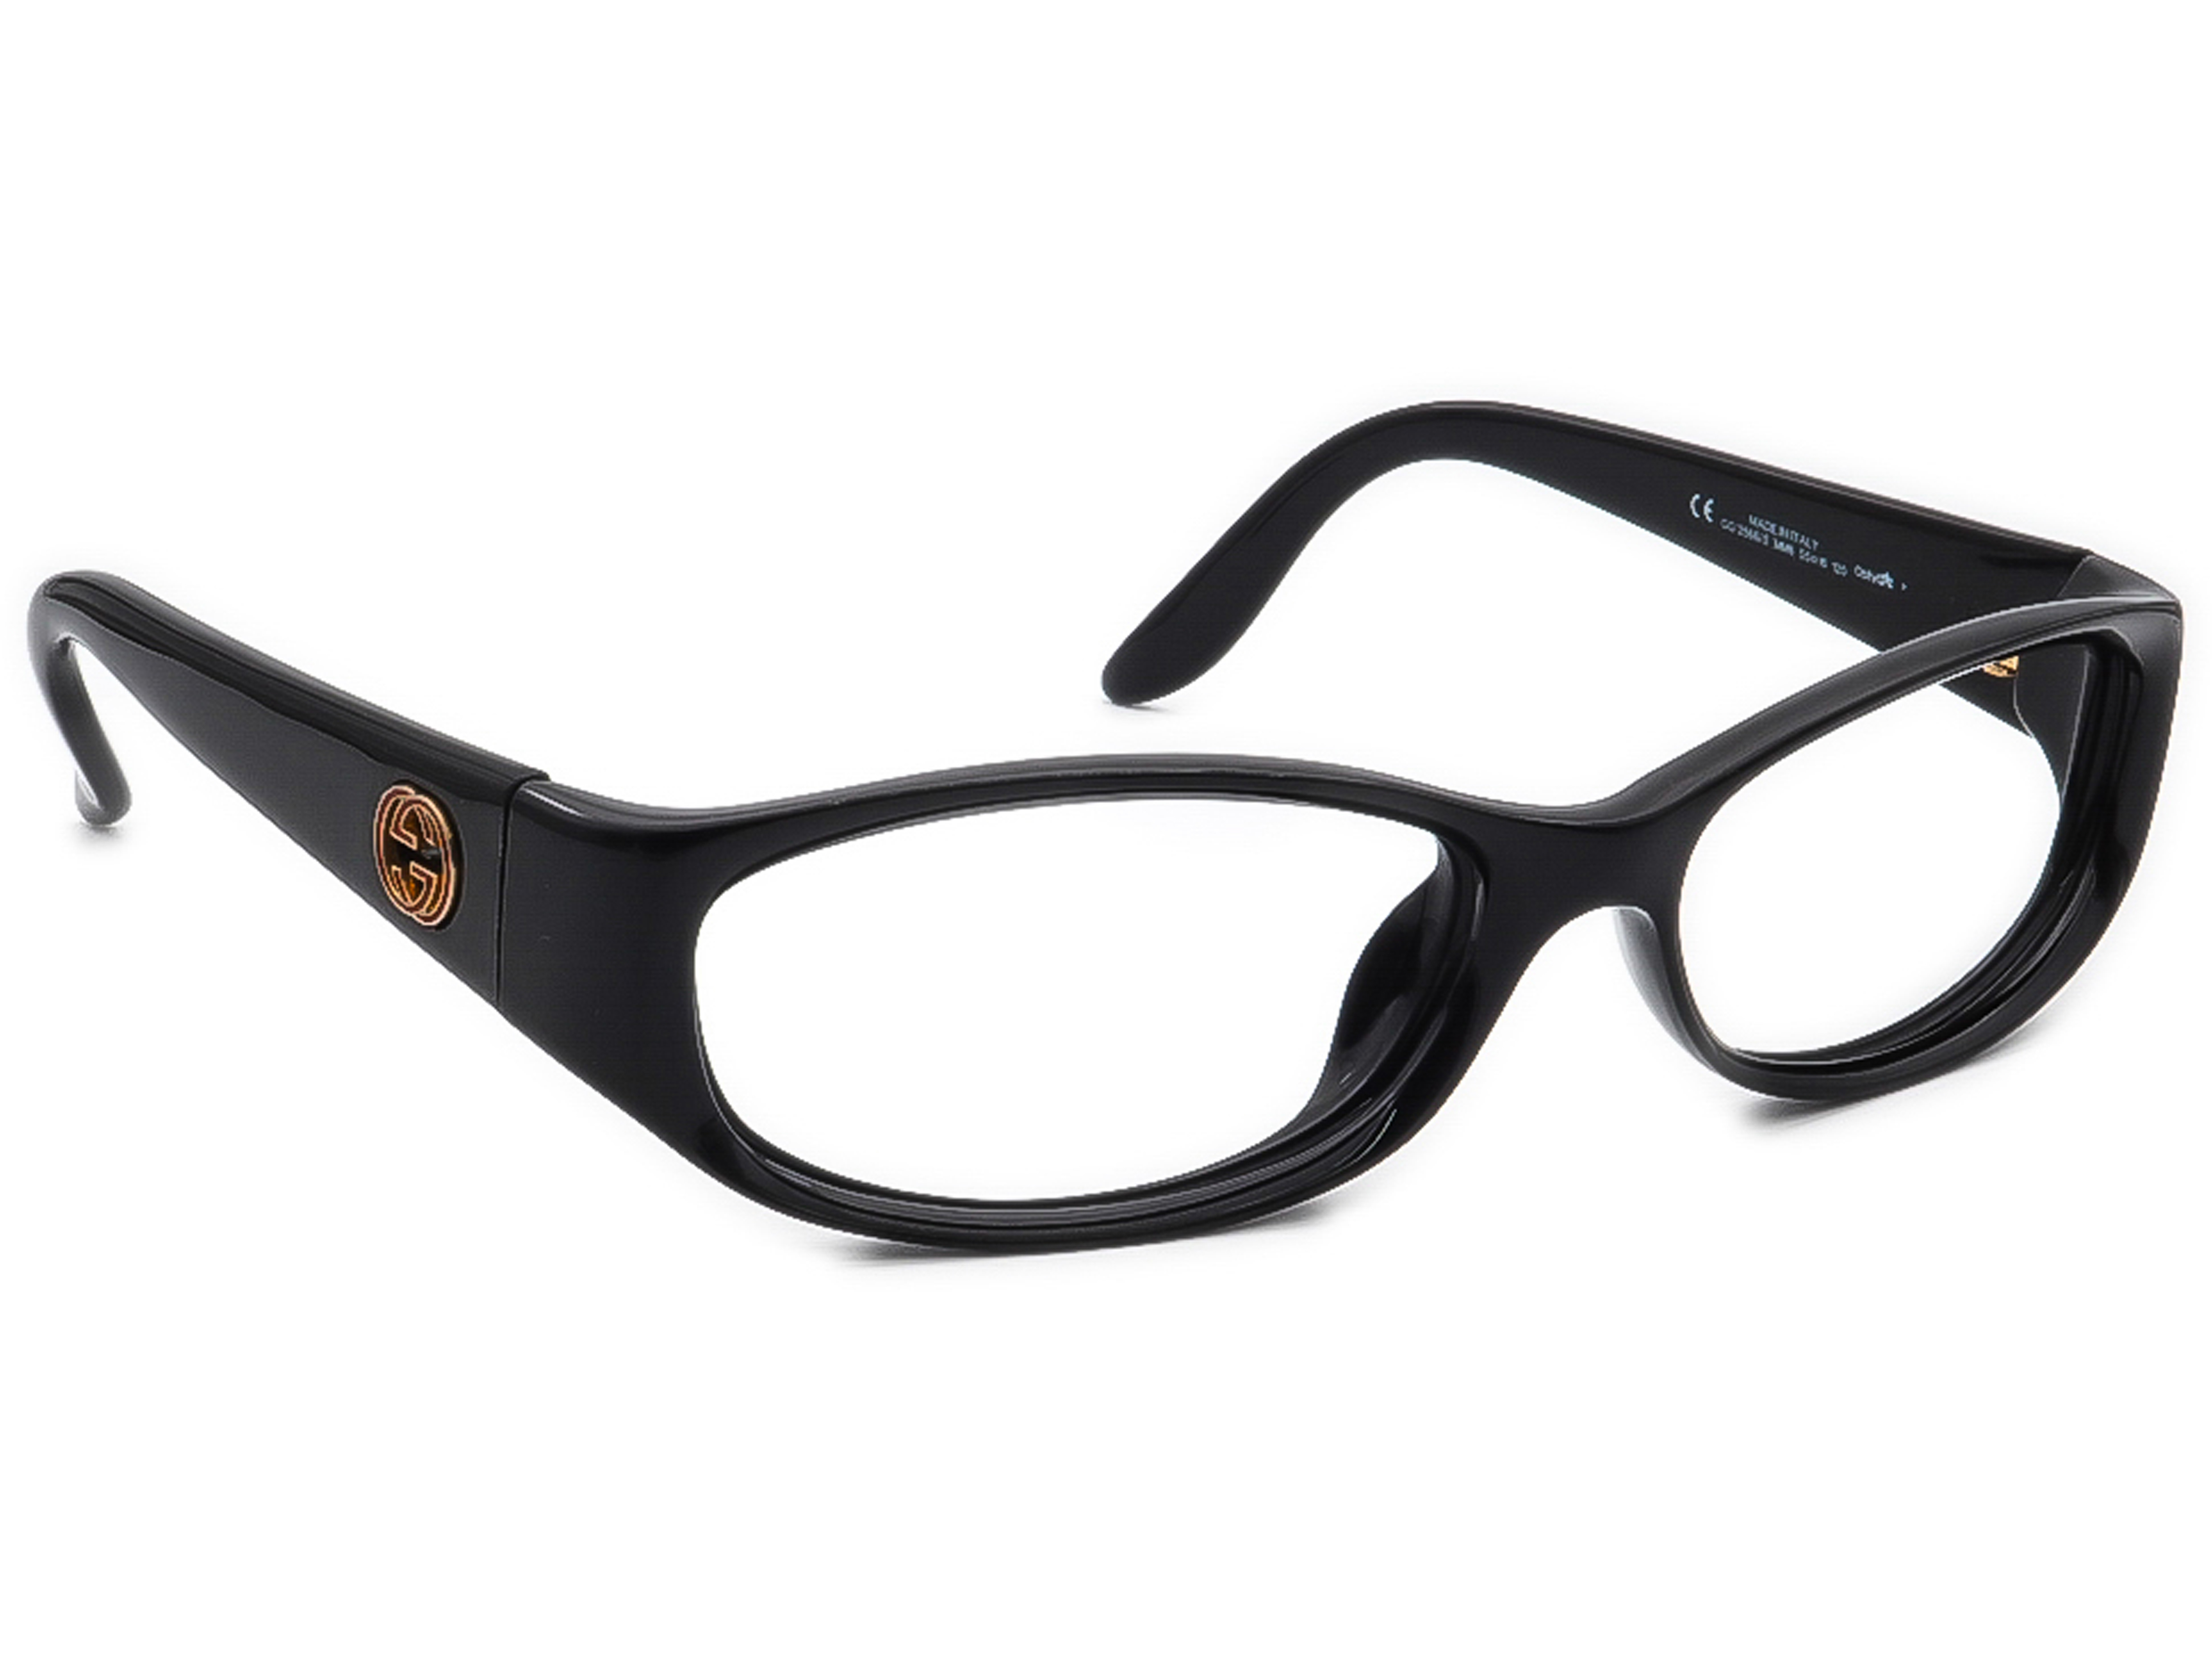 Gucci GG 2566/S MM6 Sunglasses Frame Only